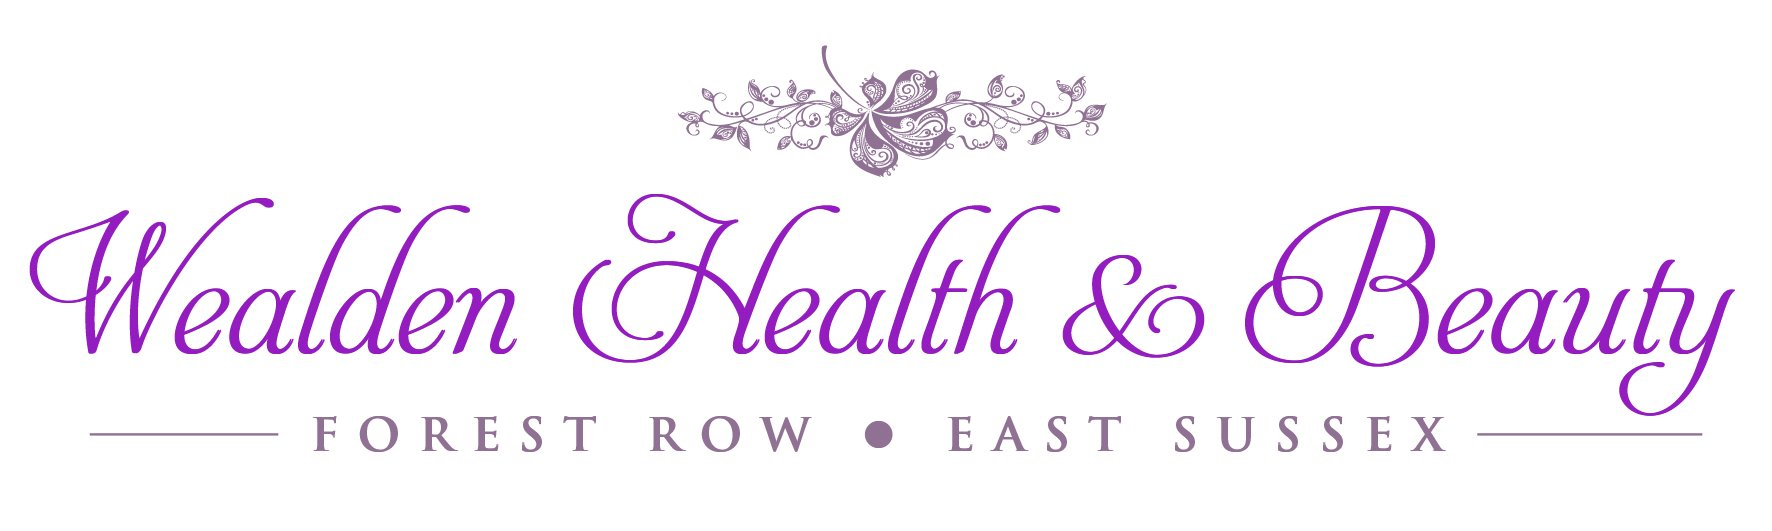 Wealden health and beauty